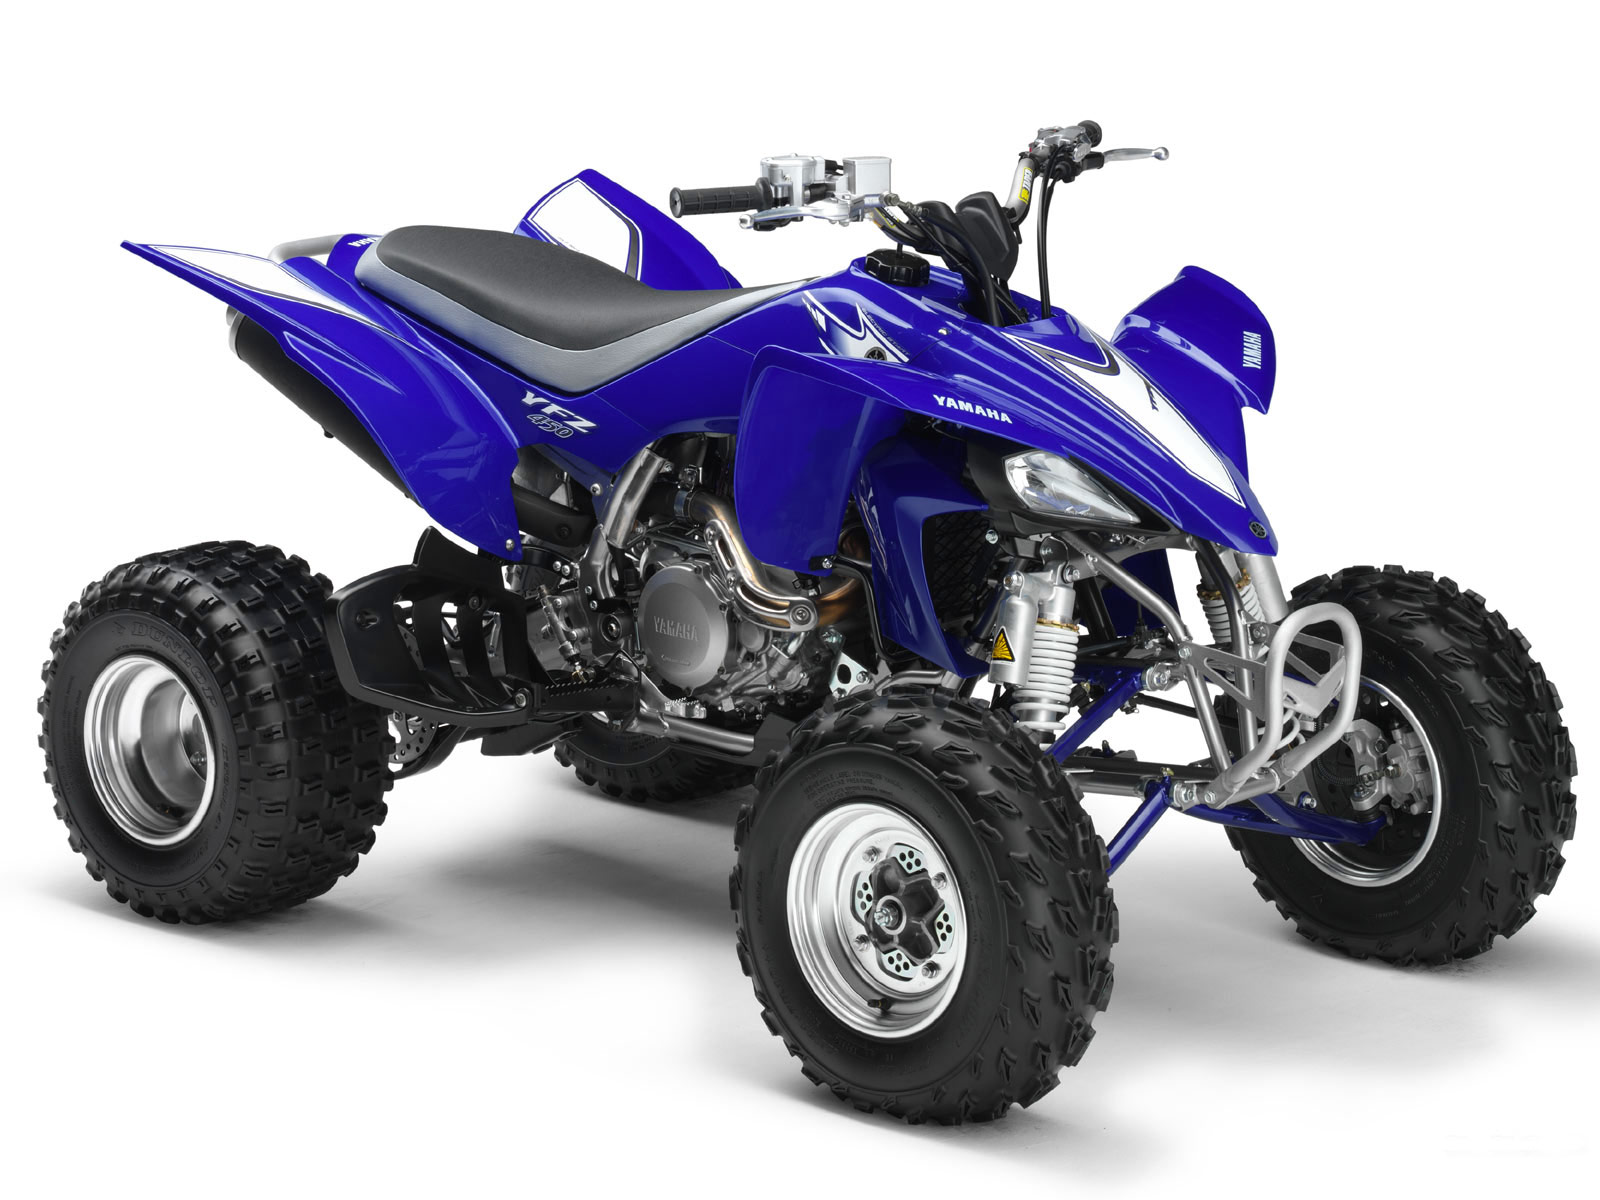 Yamaha yfz450 photo - 2